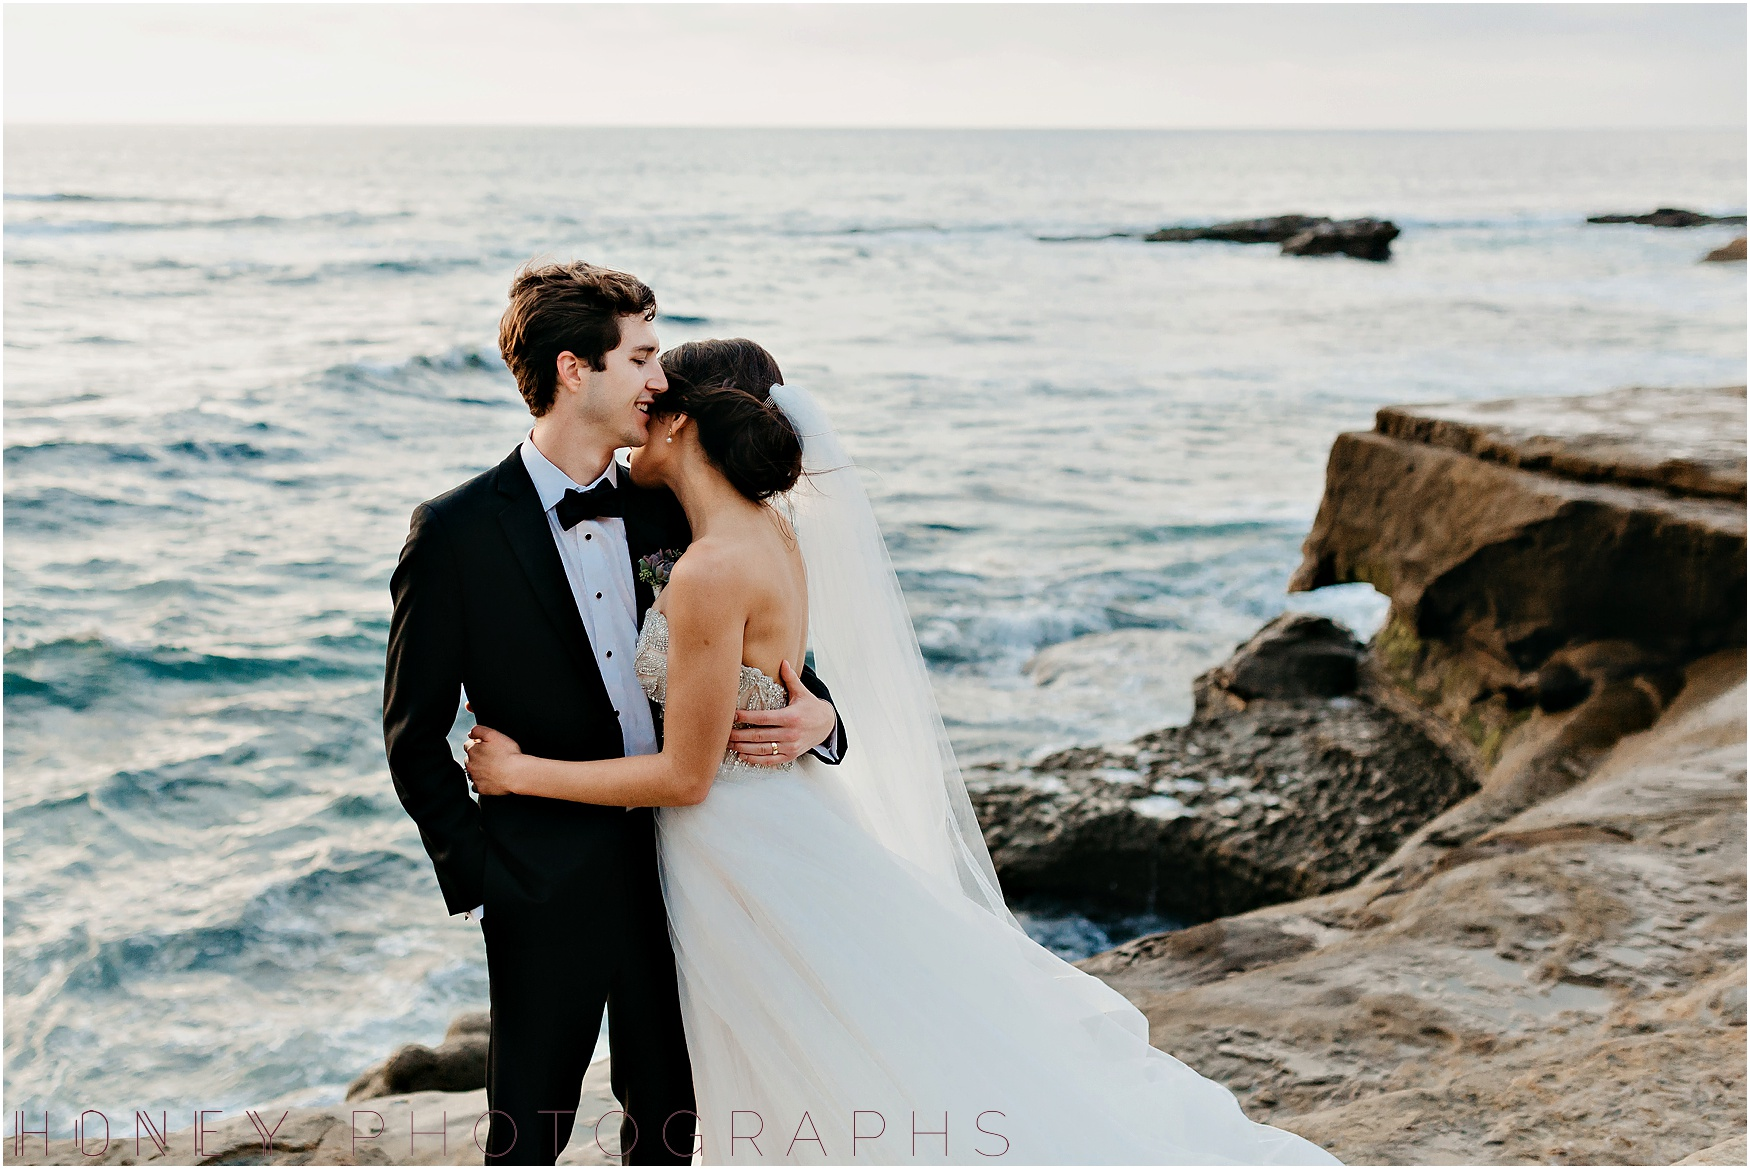 la_jolla_timeless_classic_elegant_cliffs_beach_black_tie_wedding041.jpg